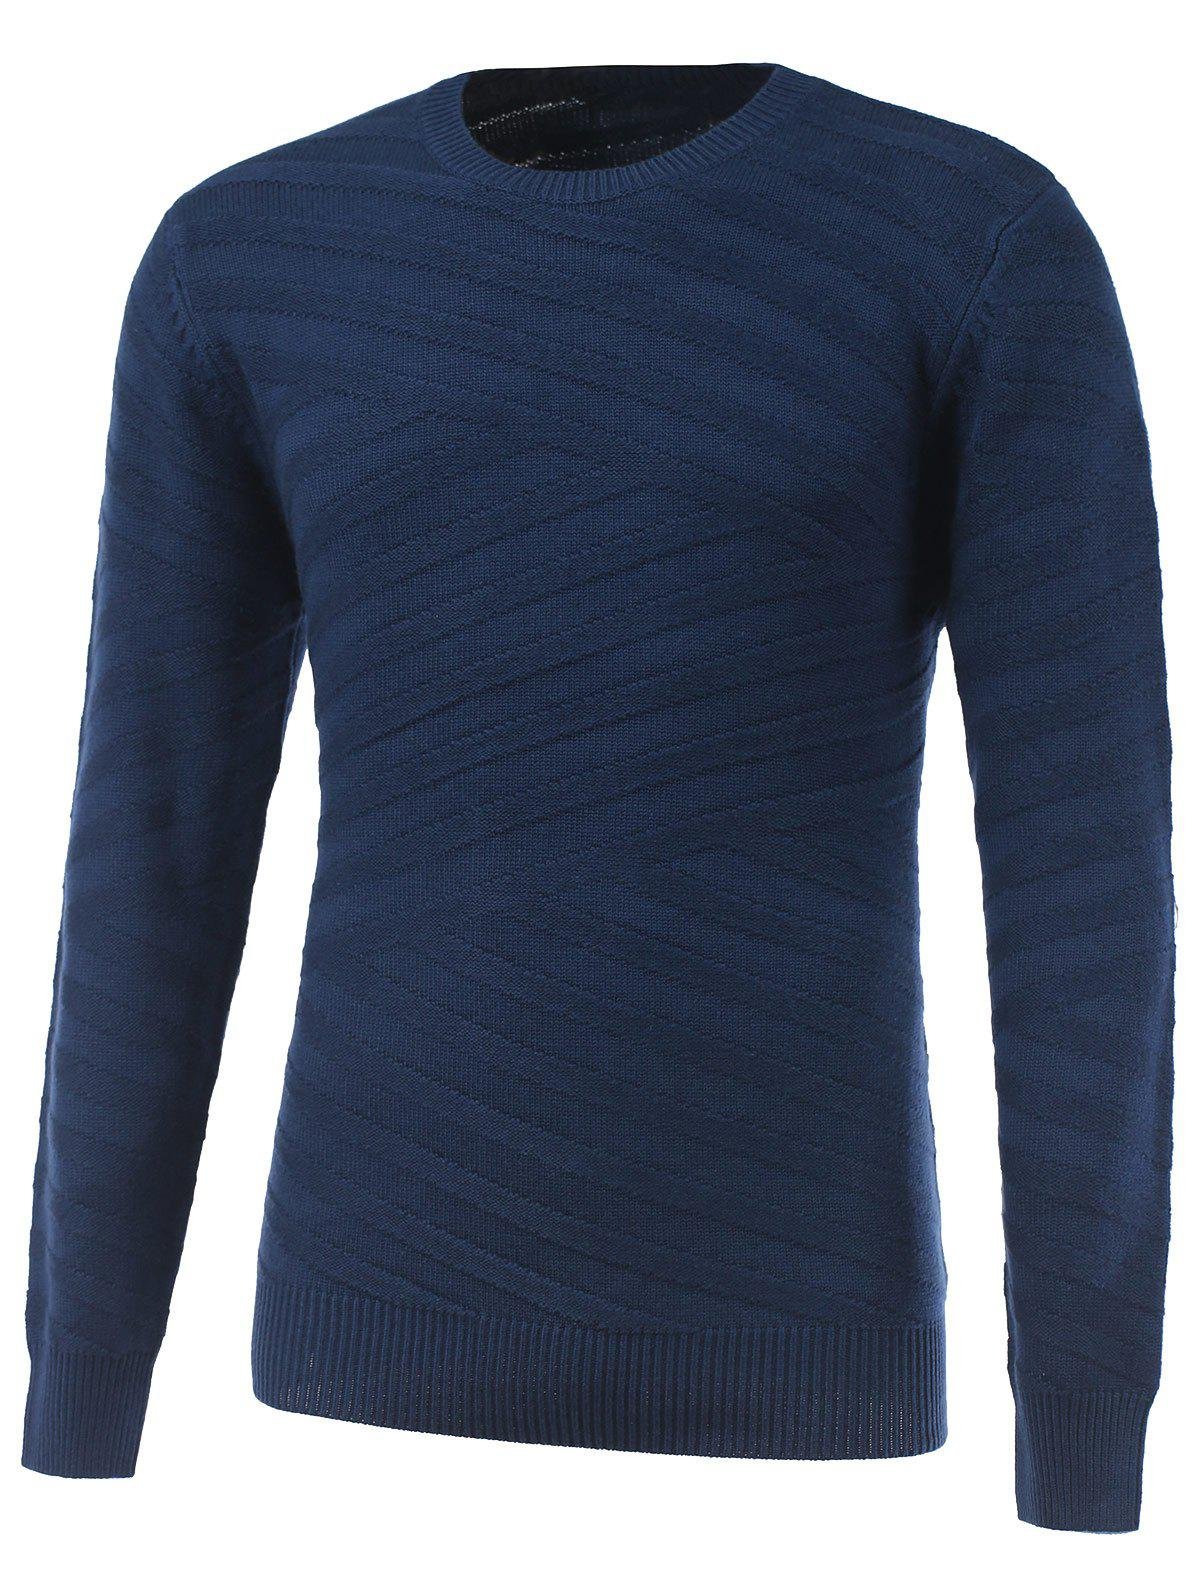 Long Sleeve Round Neck Ribbed Pullover Sweater - SAPPHIRE BLUE XL